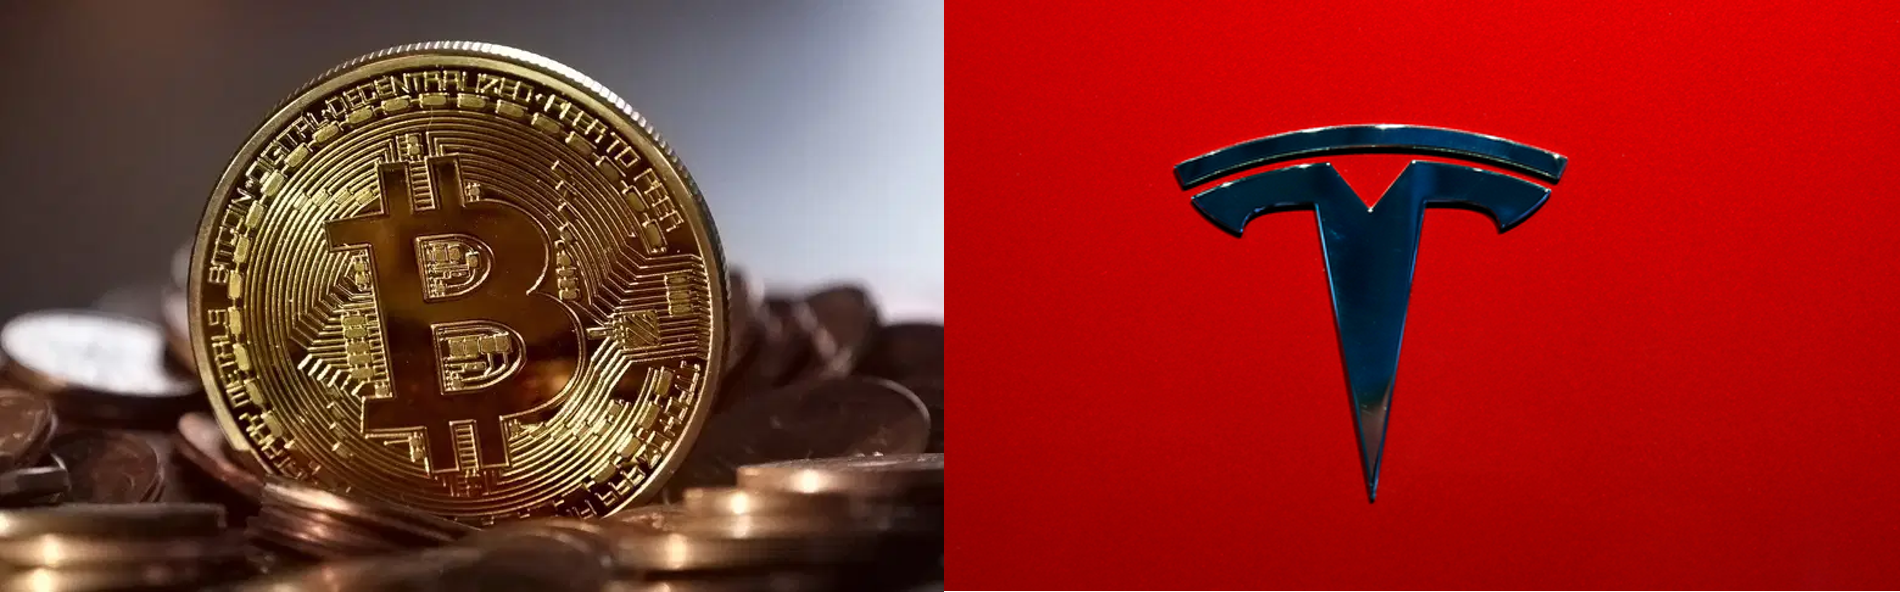 How Tesla and Bitcoin is forming the new economy